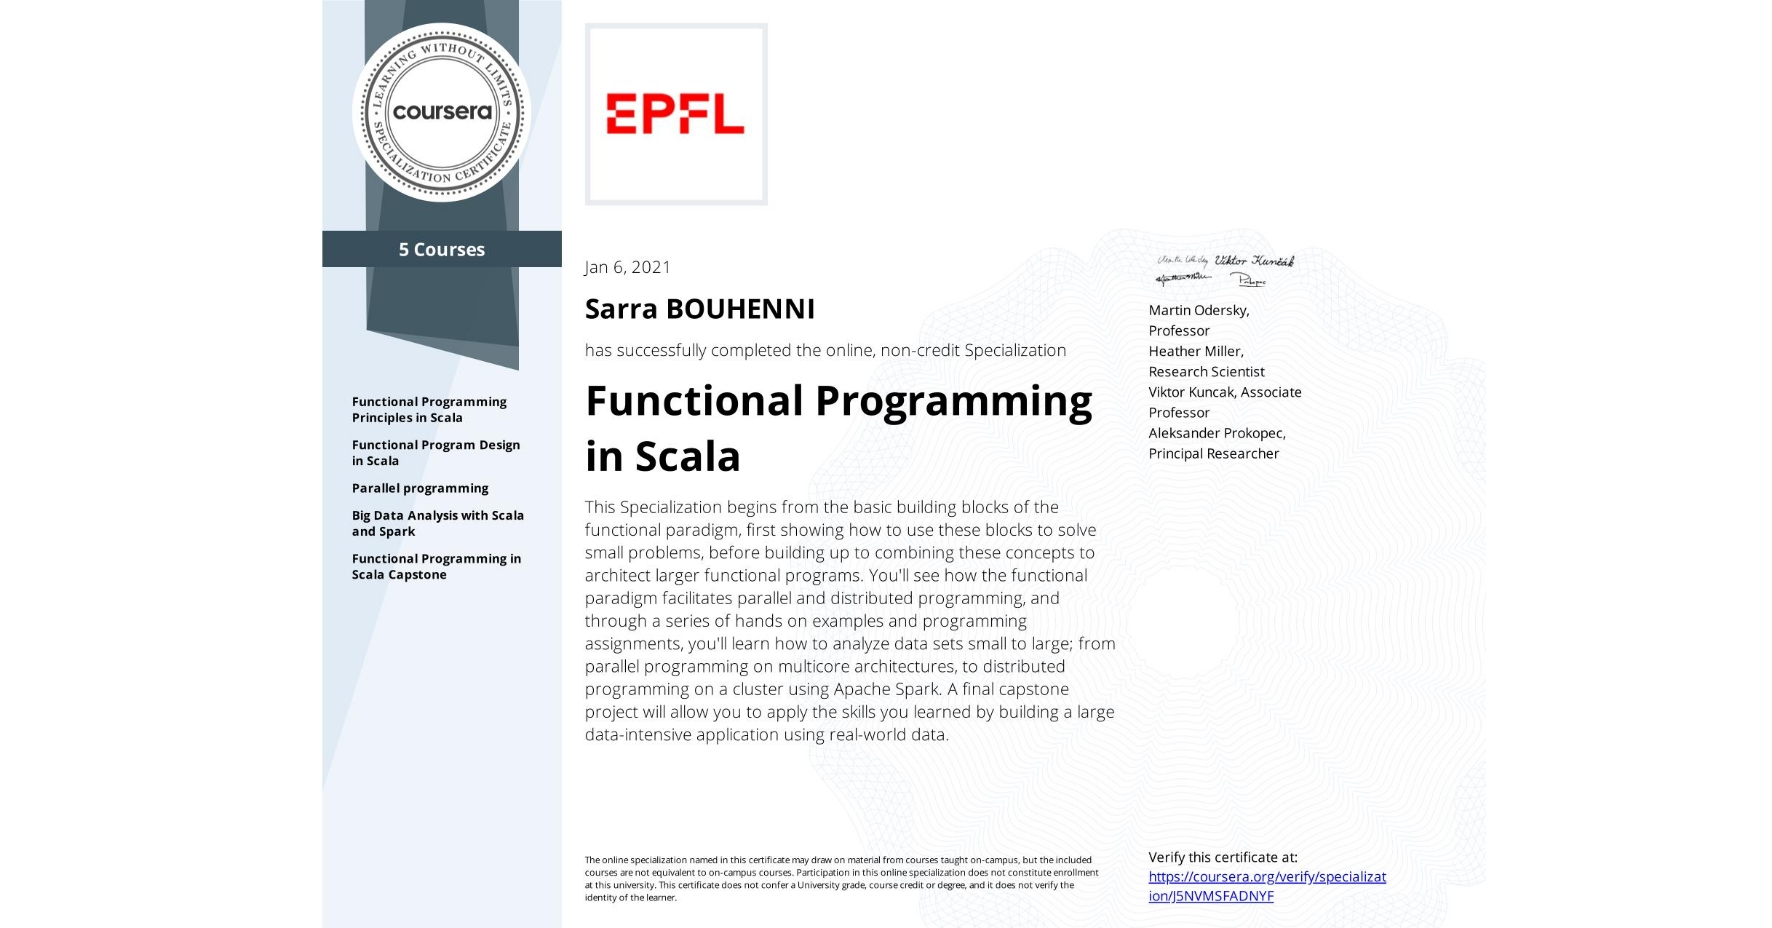 View certificate for Sarra BOUHENNI, Functional Programming in Scala, offered through Coursera. This Specialization begins from the basic building blocks of the functional paradigm, first showing how to use these blocks to solve small problems, before building up to combining these concepts to architect larger functional programs. You'll see how the functional paradigm facilitates parallel and distributed programming, and through a series of hands on examples and programming assignments, you'll learn how to analyze data sets small to large; from parallel programming on multicore architectures, to distributed programming on a cluster using Apache Spark. A final capstone project will allow you to apply the skills you learned by building a large data-intensive application using real-world data.